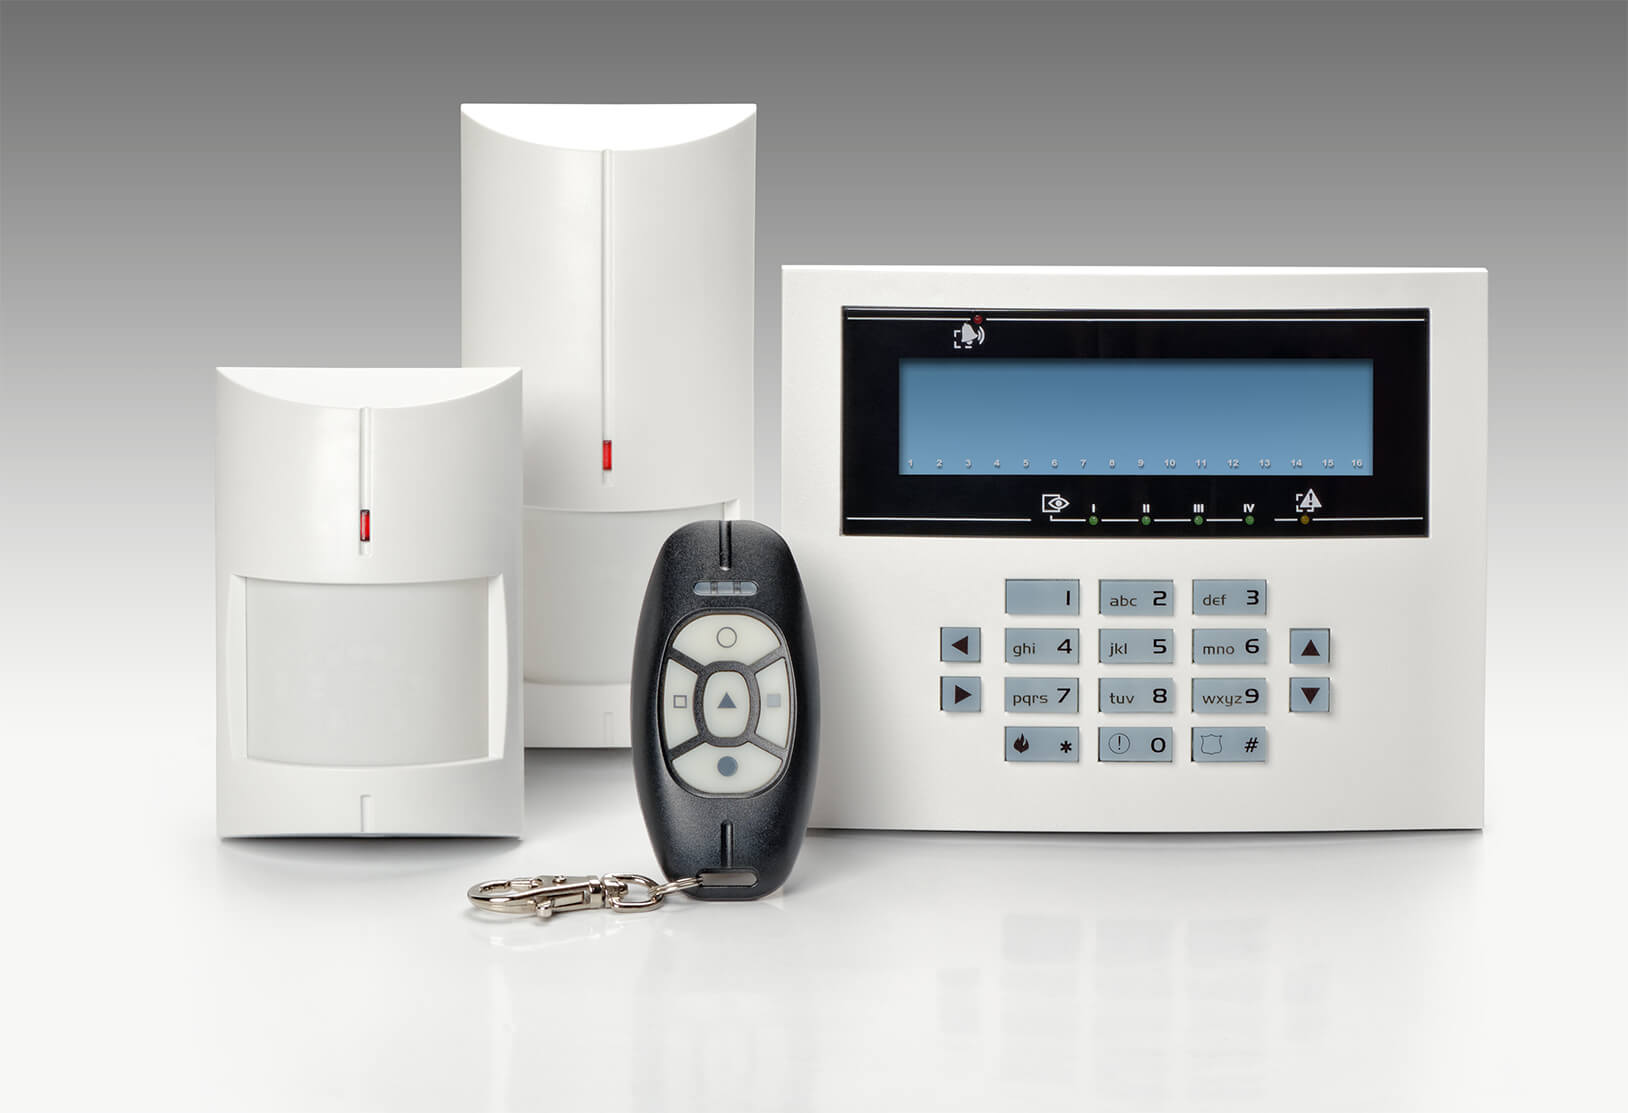 Burglar Alarms Repair in Notting Hill W11 - Local Notting Hill W11 alarm engineers.Call 02078872244 - See cost/price for burglar alarm repair and book your alarm engineer. No Hidden charges,No Contracts, Book as you need.Engineers on demand.All alarm makes repaired.Same day service ability.